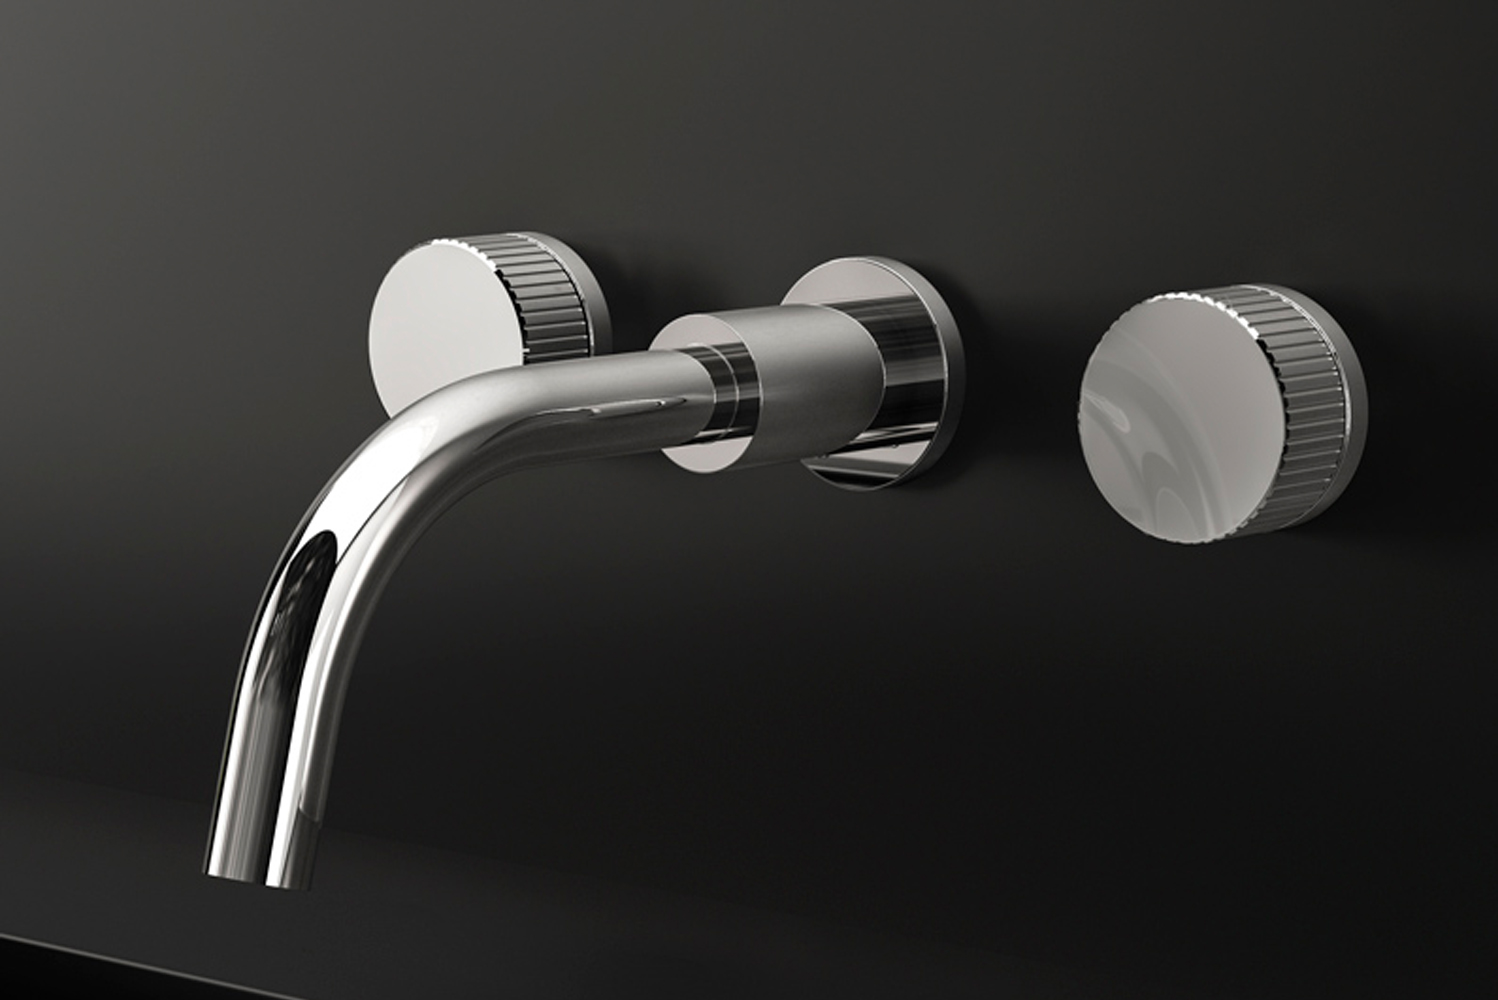 Tactile, multi-faceted and gem-like, these machine-patterned handles are available in multiple finishes.